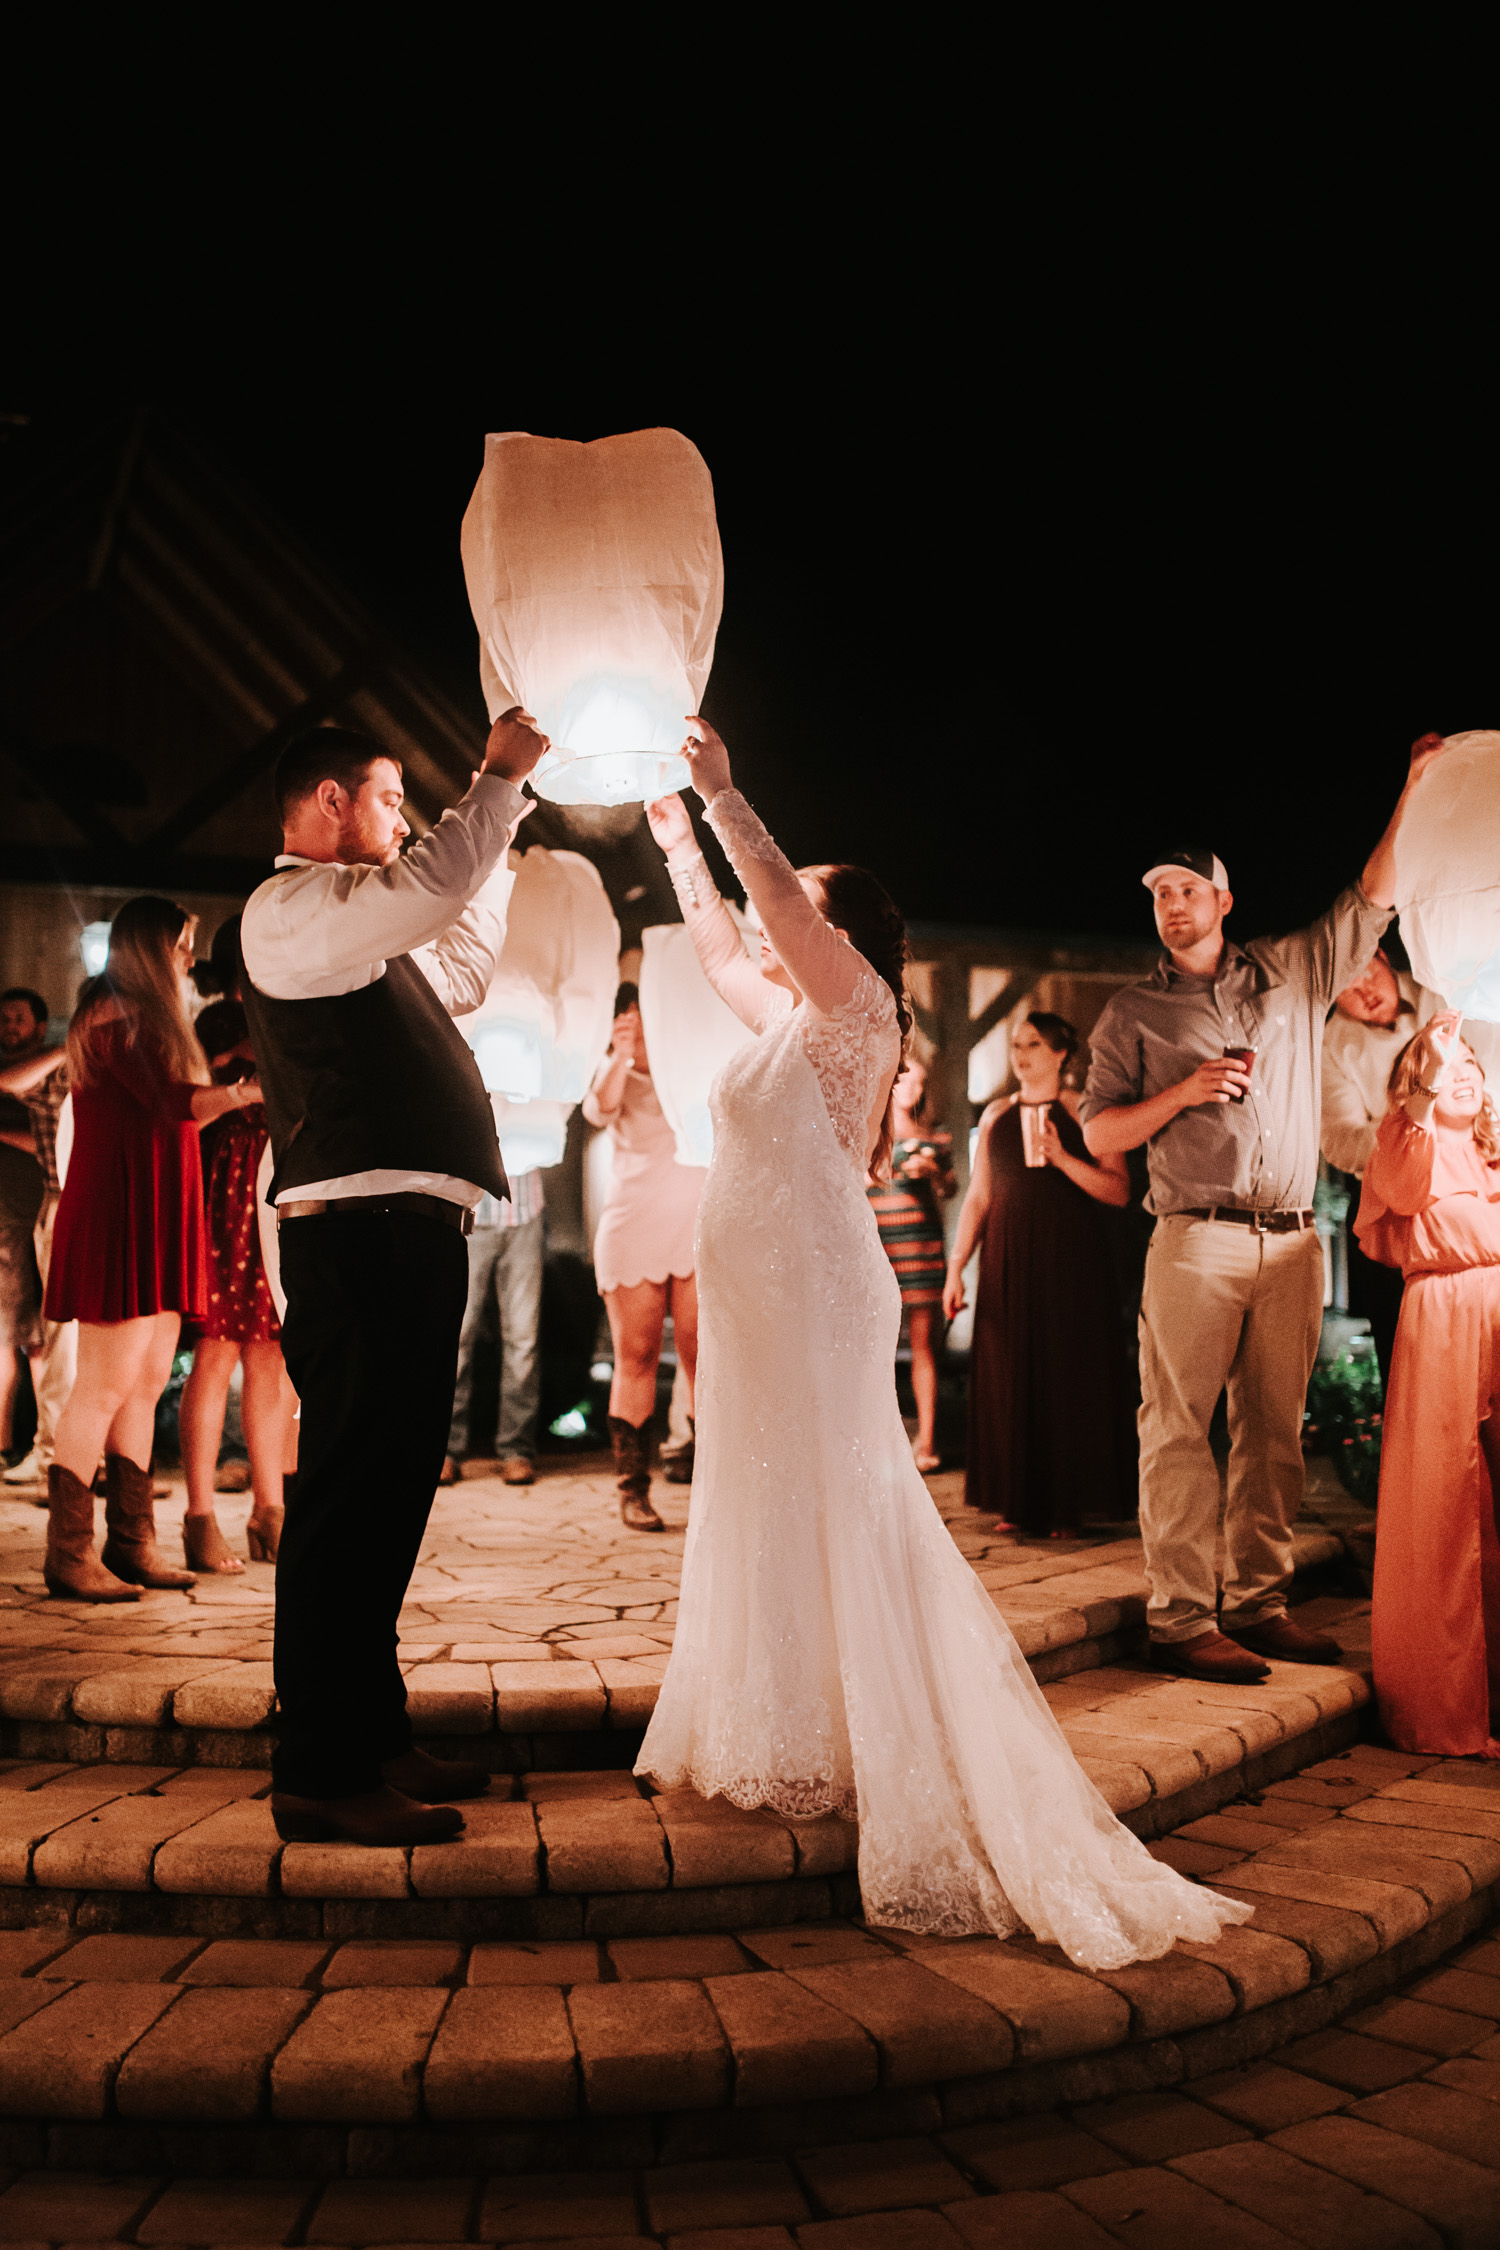 Classy, Southern, Country Wedding | Lantern Wedding Exit / Reception Send Off at Atkinson Farms in Danville, Virginia | Greensboro Winston-Salem, NC Wedding Photographer